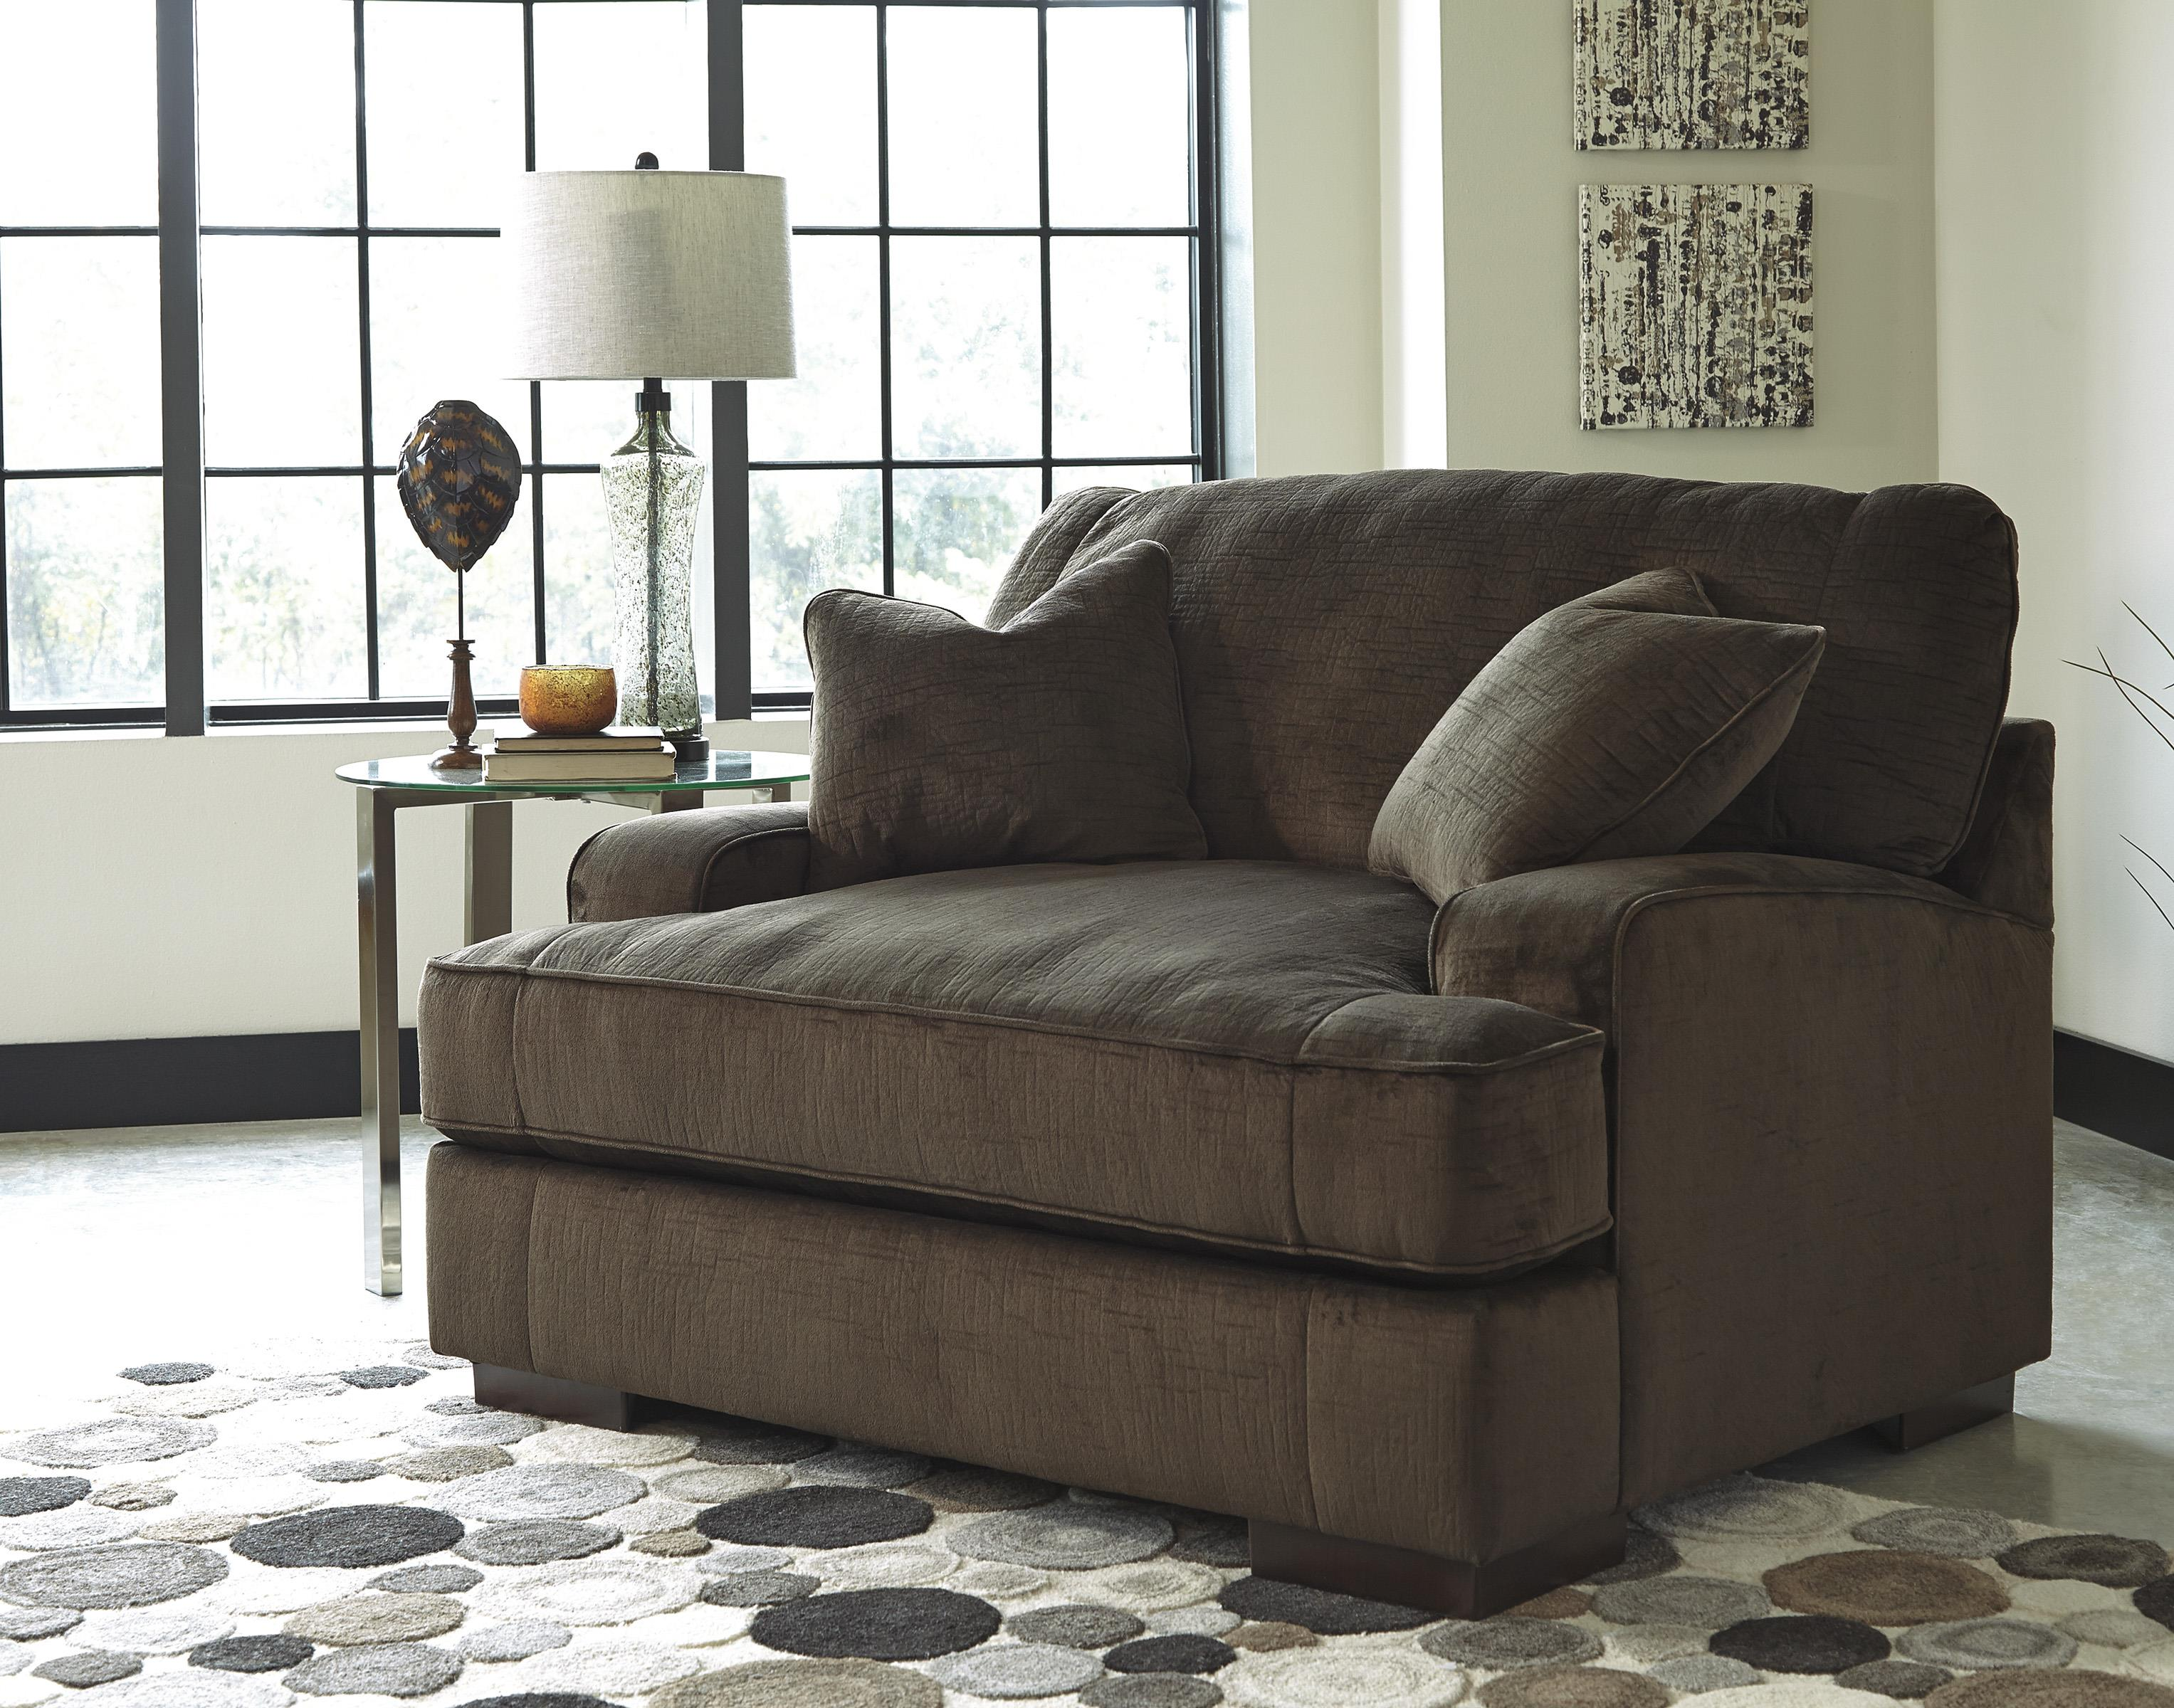 Contemporary Chair and a Half & Ottoman by Benchcraft